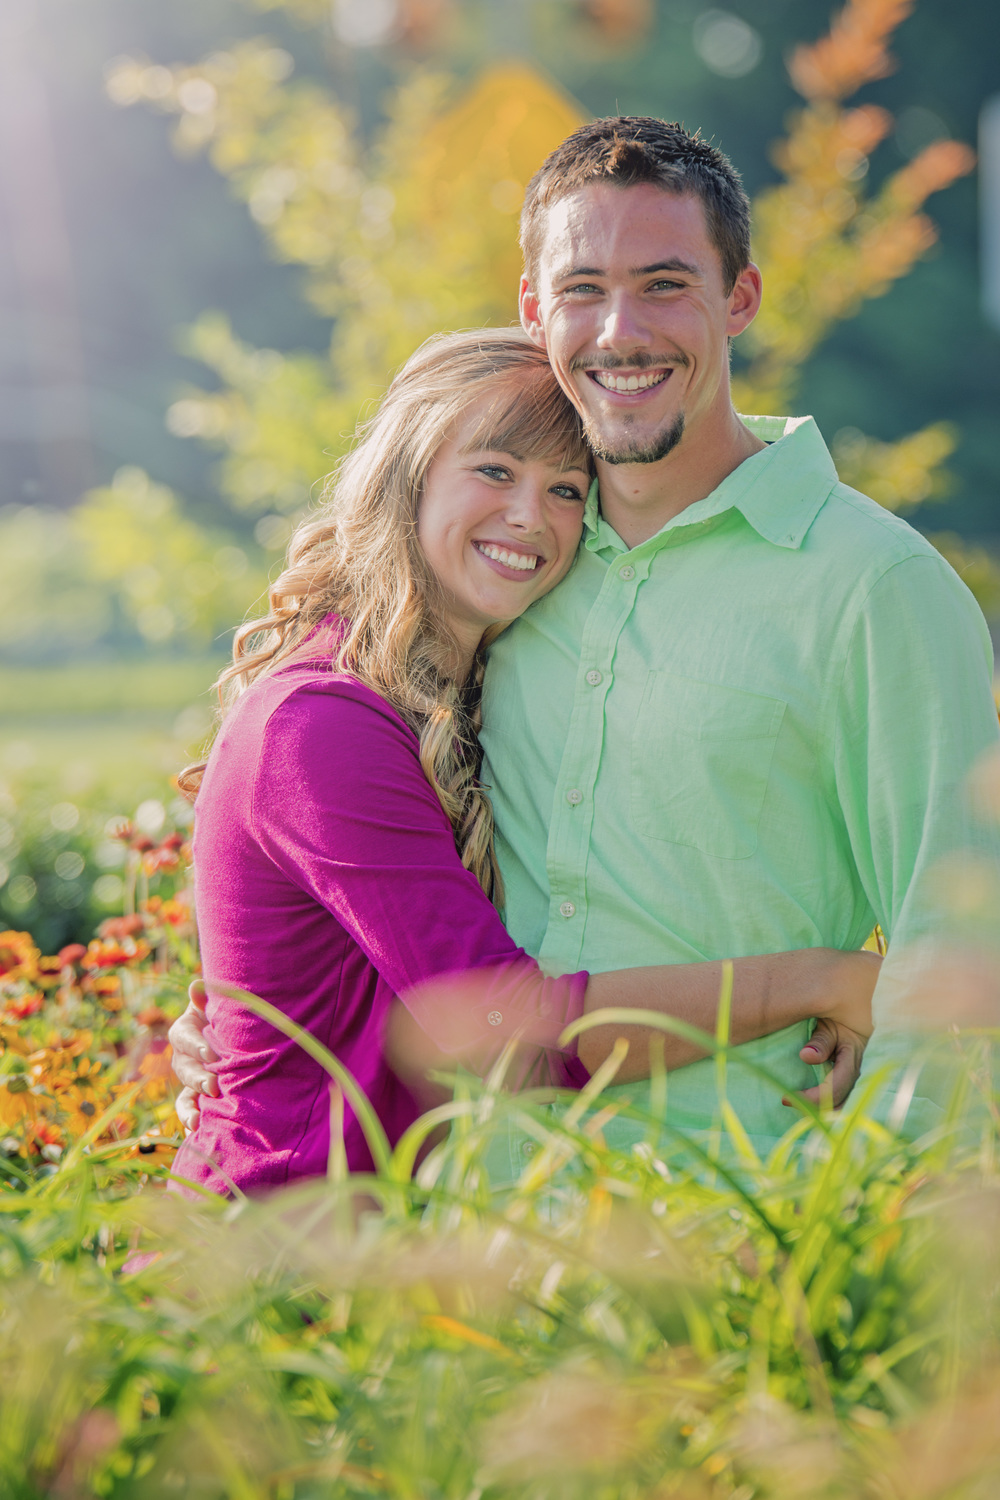 garden_dock_quilt_fun_engagement_session_lynchburg_va007.jpg